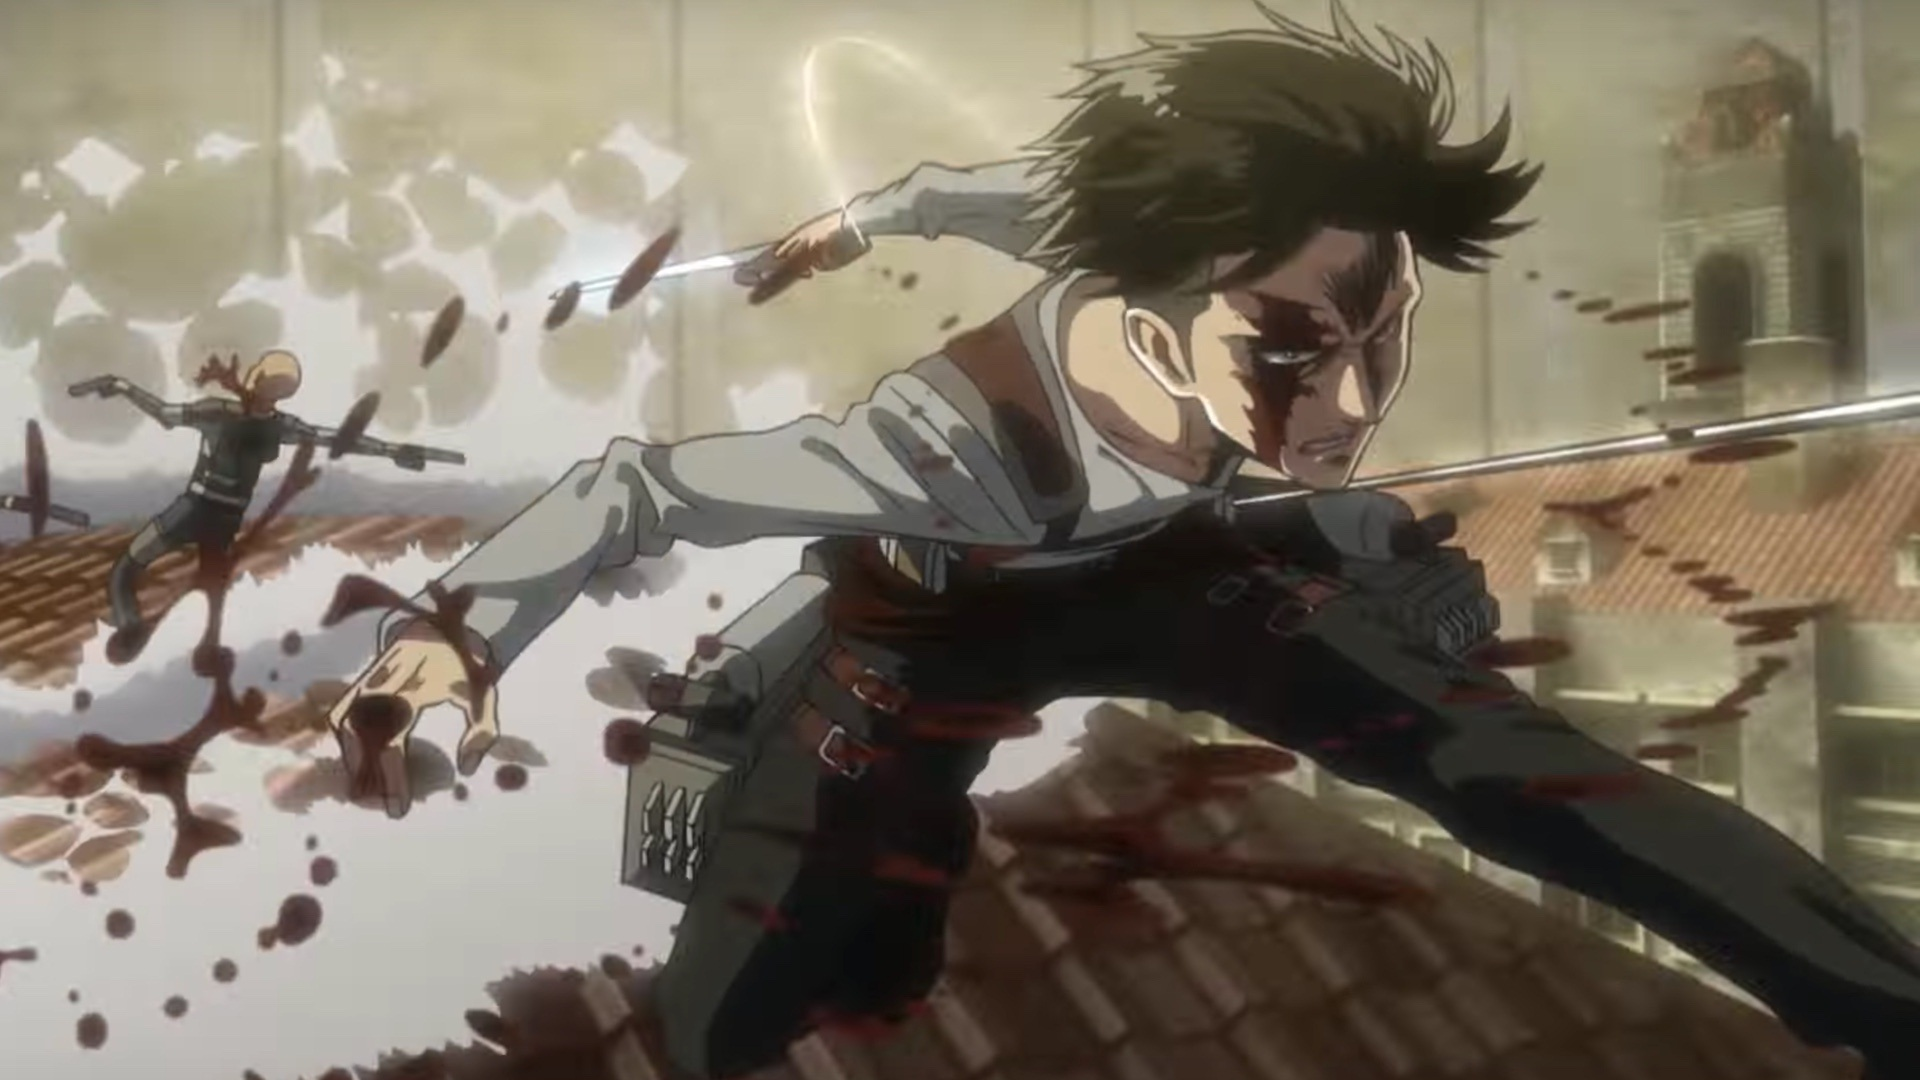 Attack On Titan Wallpaper 4k Posted By Christopher Johnson